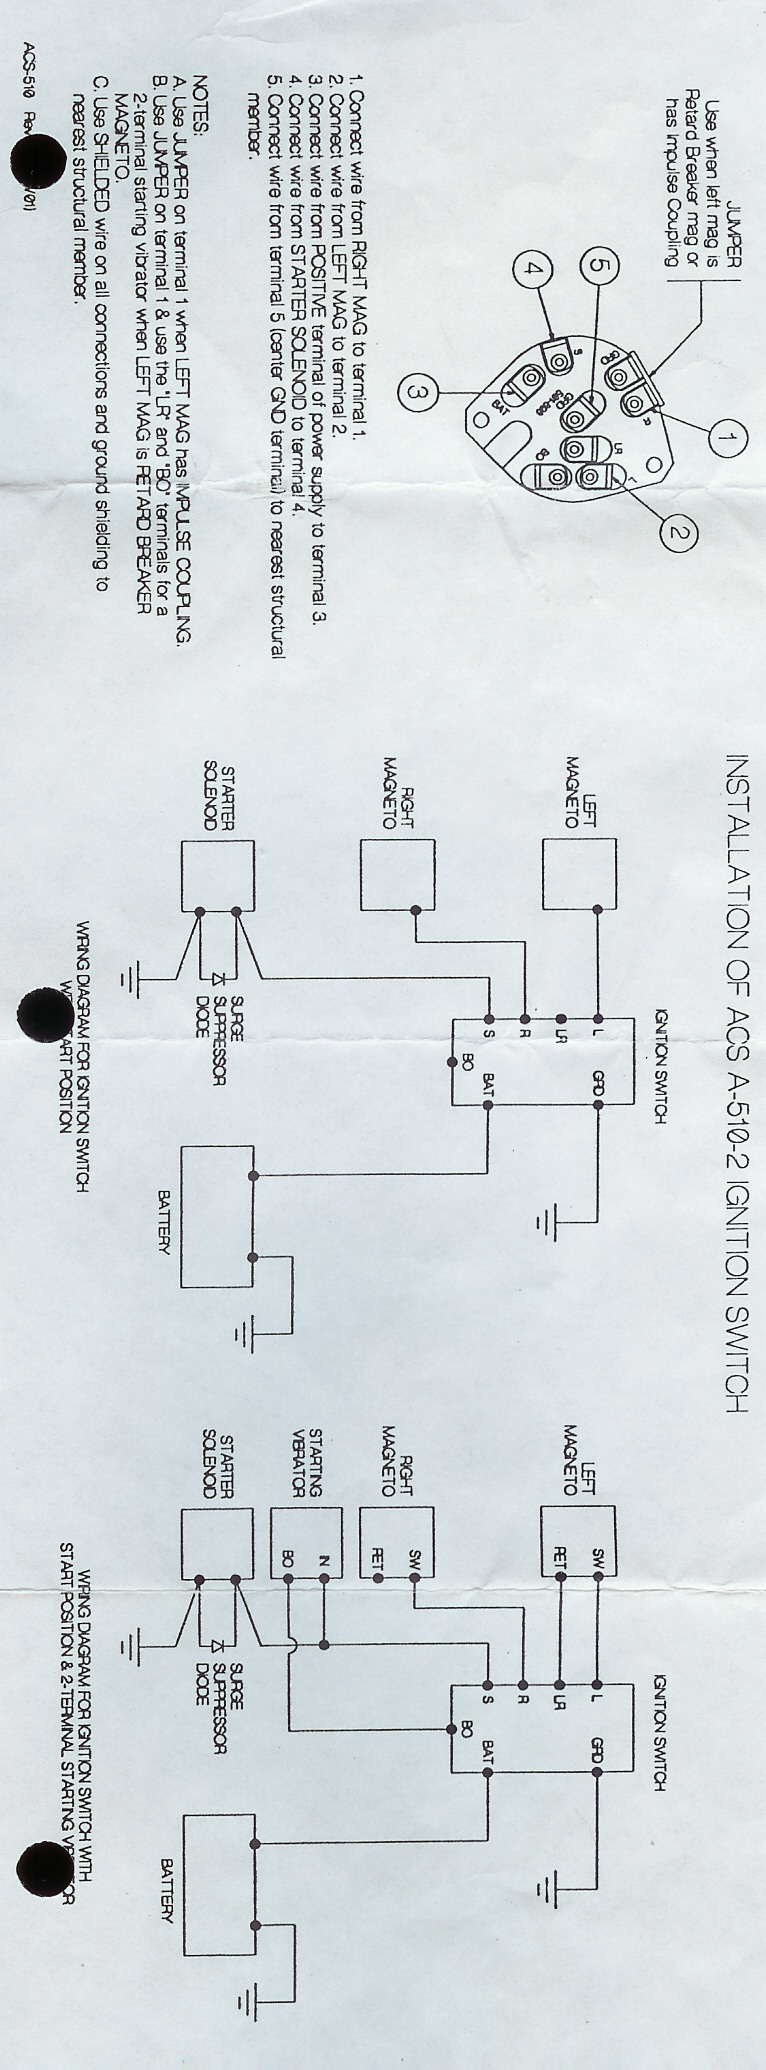 D Wiring Hoa Stations Image additionally Attachment in addition D Logan Lathe Furnas Drum Switch Motor Wiring Need Help Drumterm as well Photo furthermore Key Switch. on start switch wiring diagram